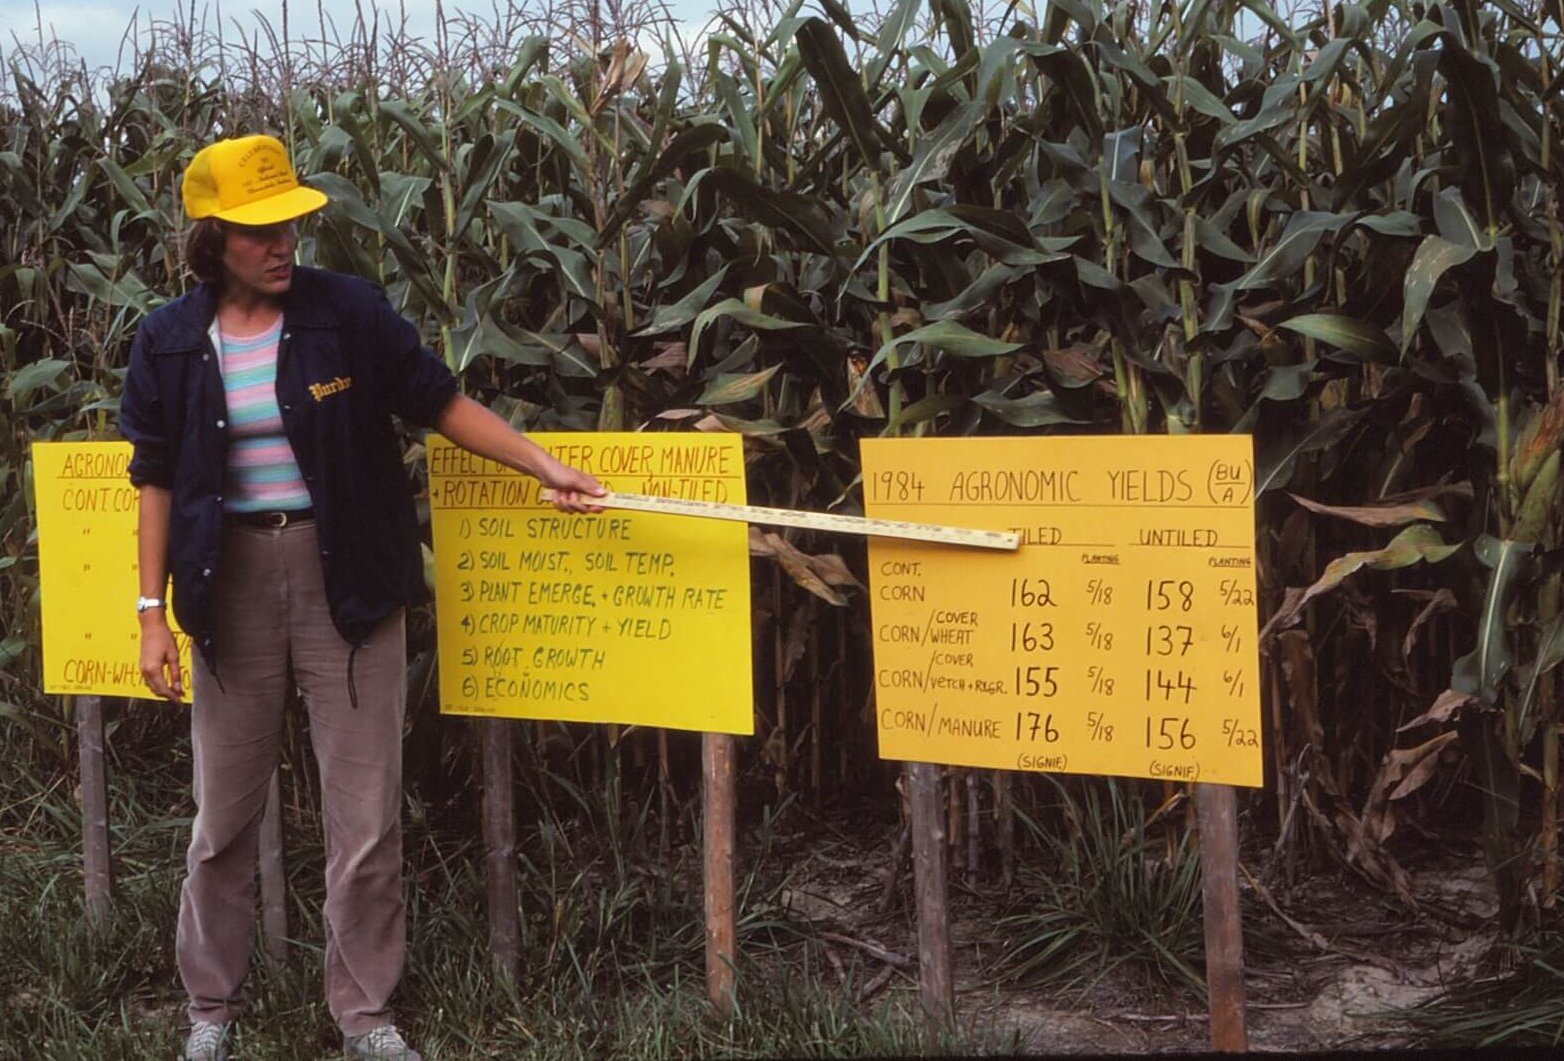 Eileen Kladivko performed a 35-year research project at SEPAC on field tile drainage.